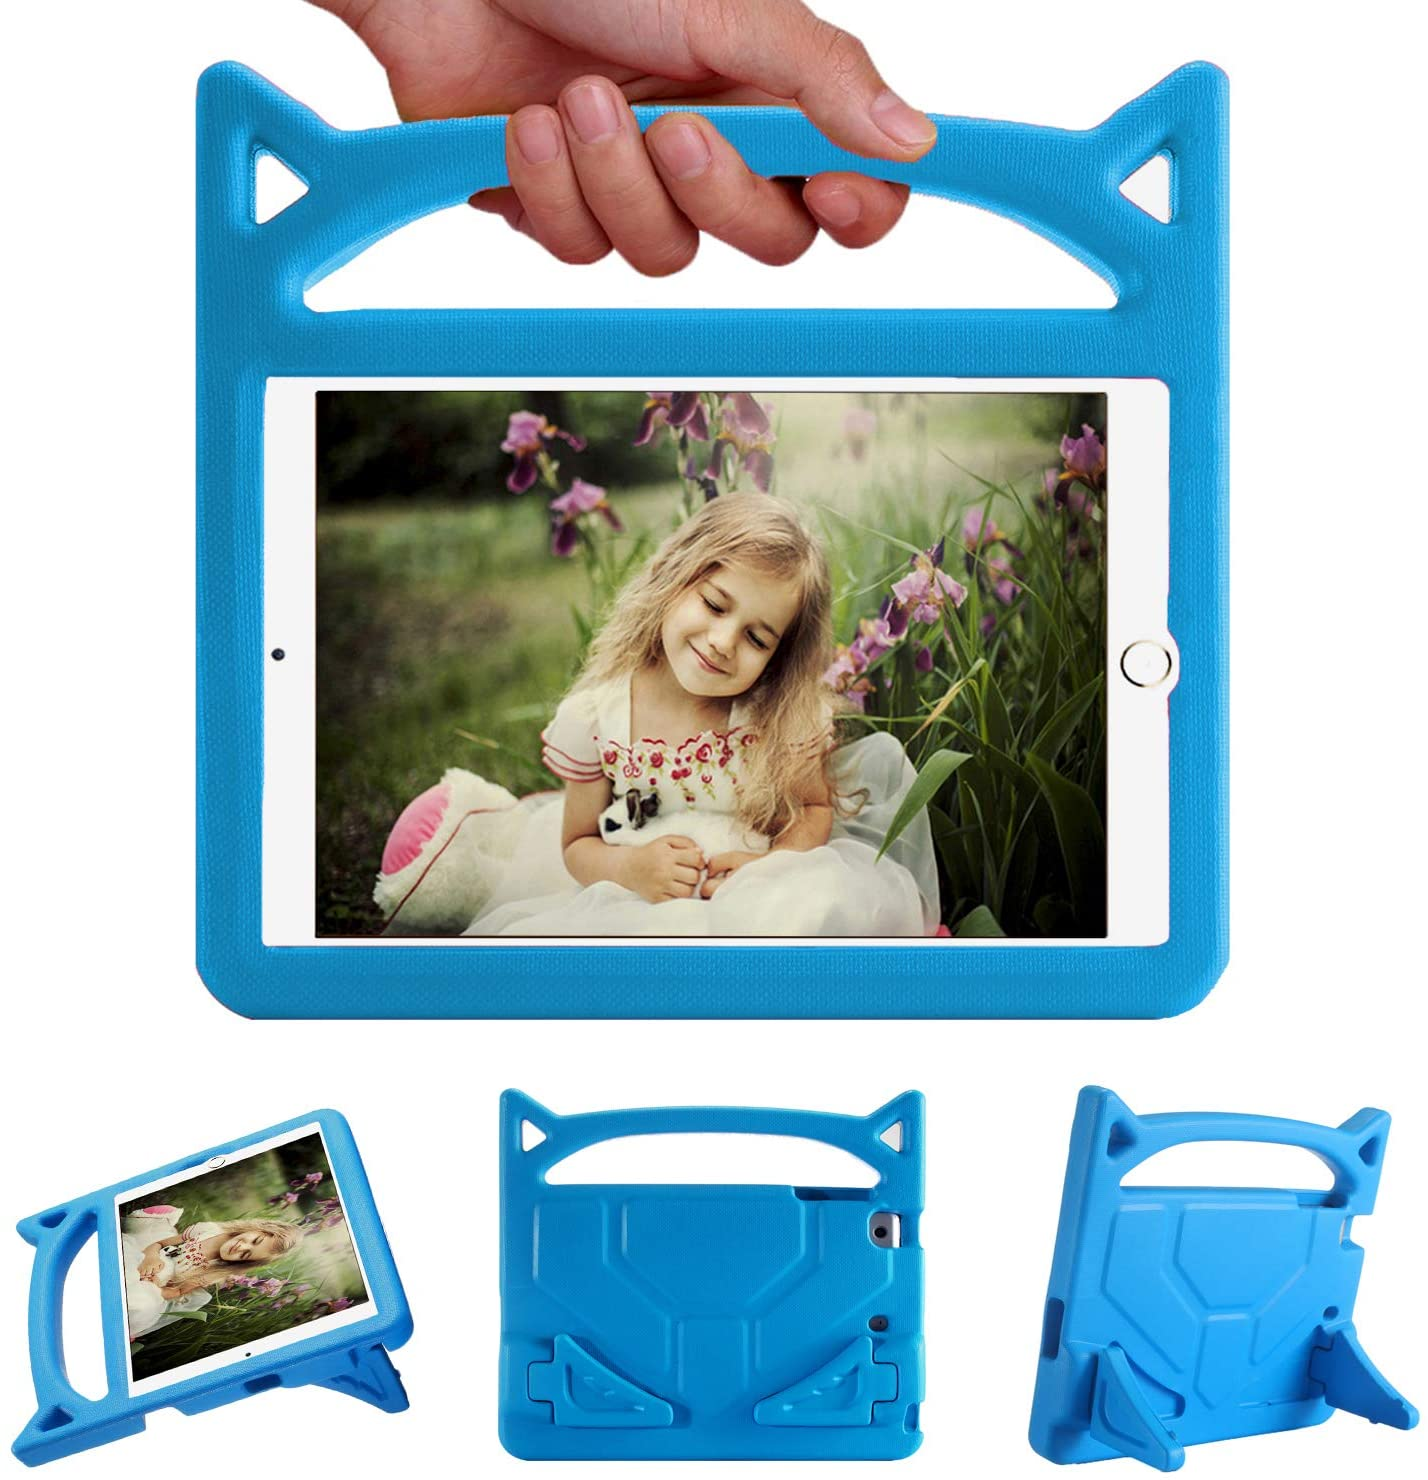 Riaour Kids Case for iPad Mini 5 4 3 2 1 - Light Weight Shock Proof Handle Friendly Convertible Stand Kids Case for iPad Mini 5 (2019), Mini 4, iPad Mini 3rd Generation, Mini 2 Tablet(New Blue)